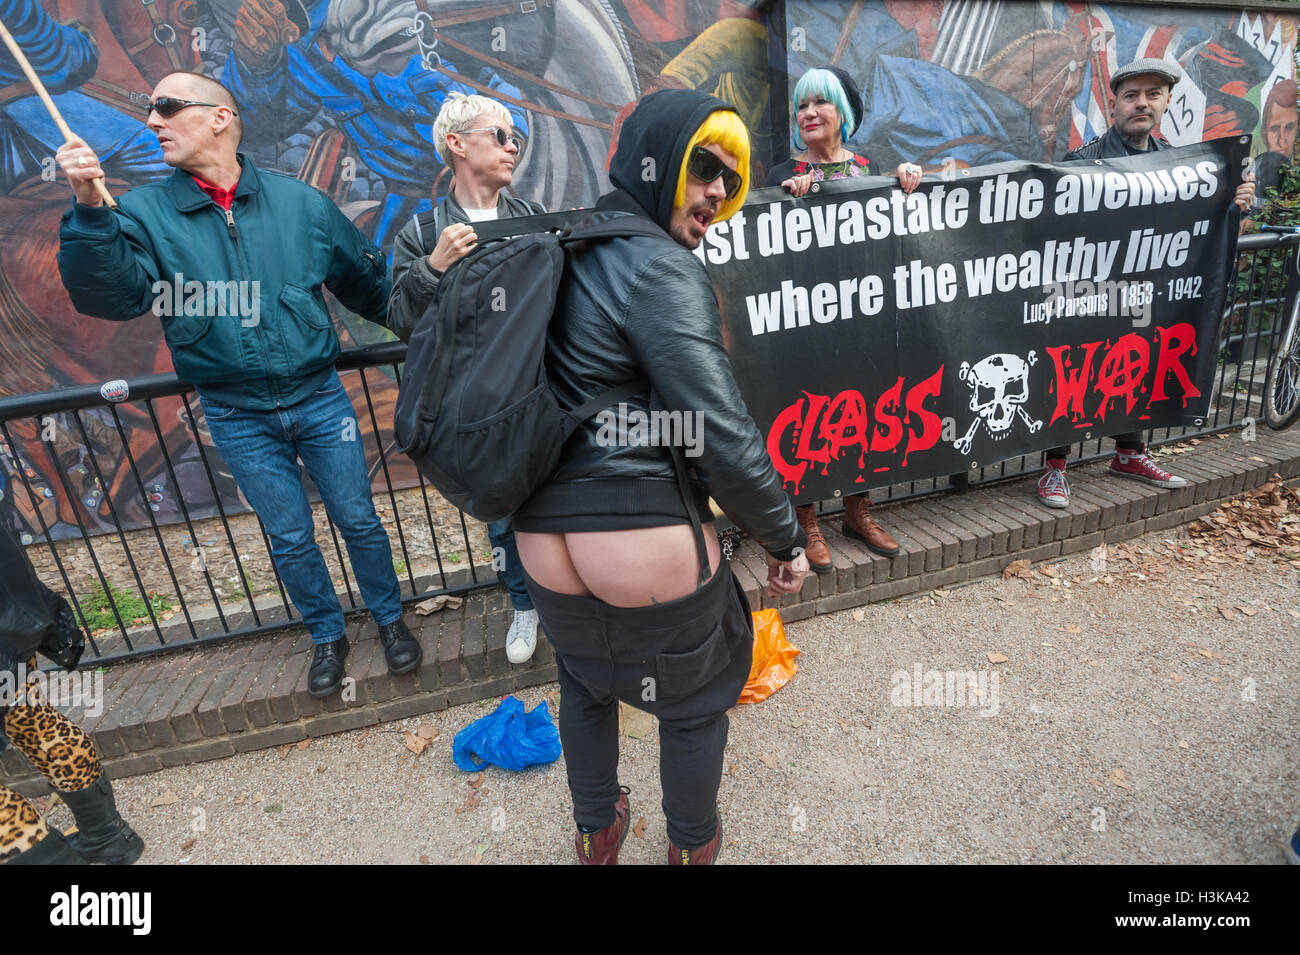 London, UK. 9th October 2016. Adam Clifford of Class War 'moons' at ther rally in front of the Cable St - Stock Image